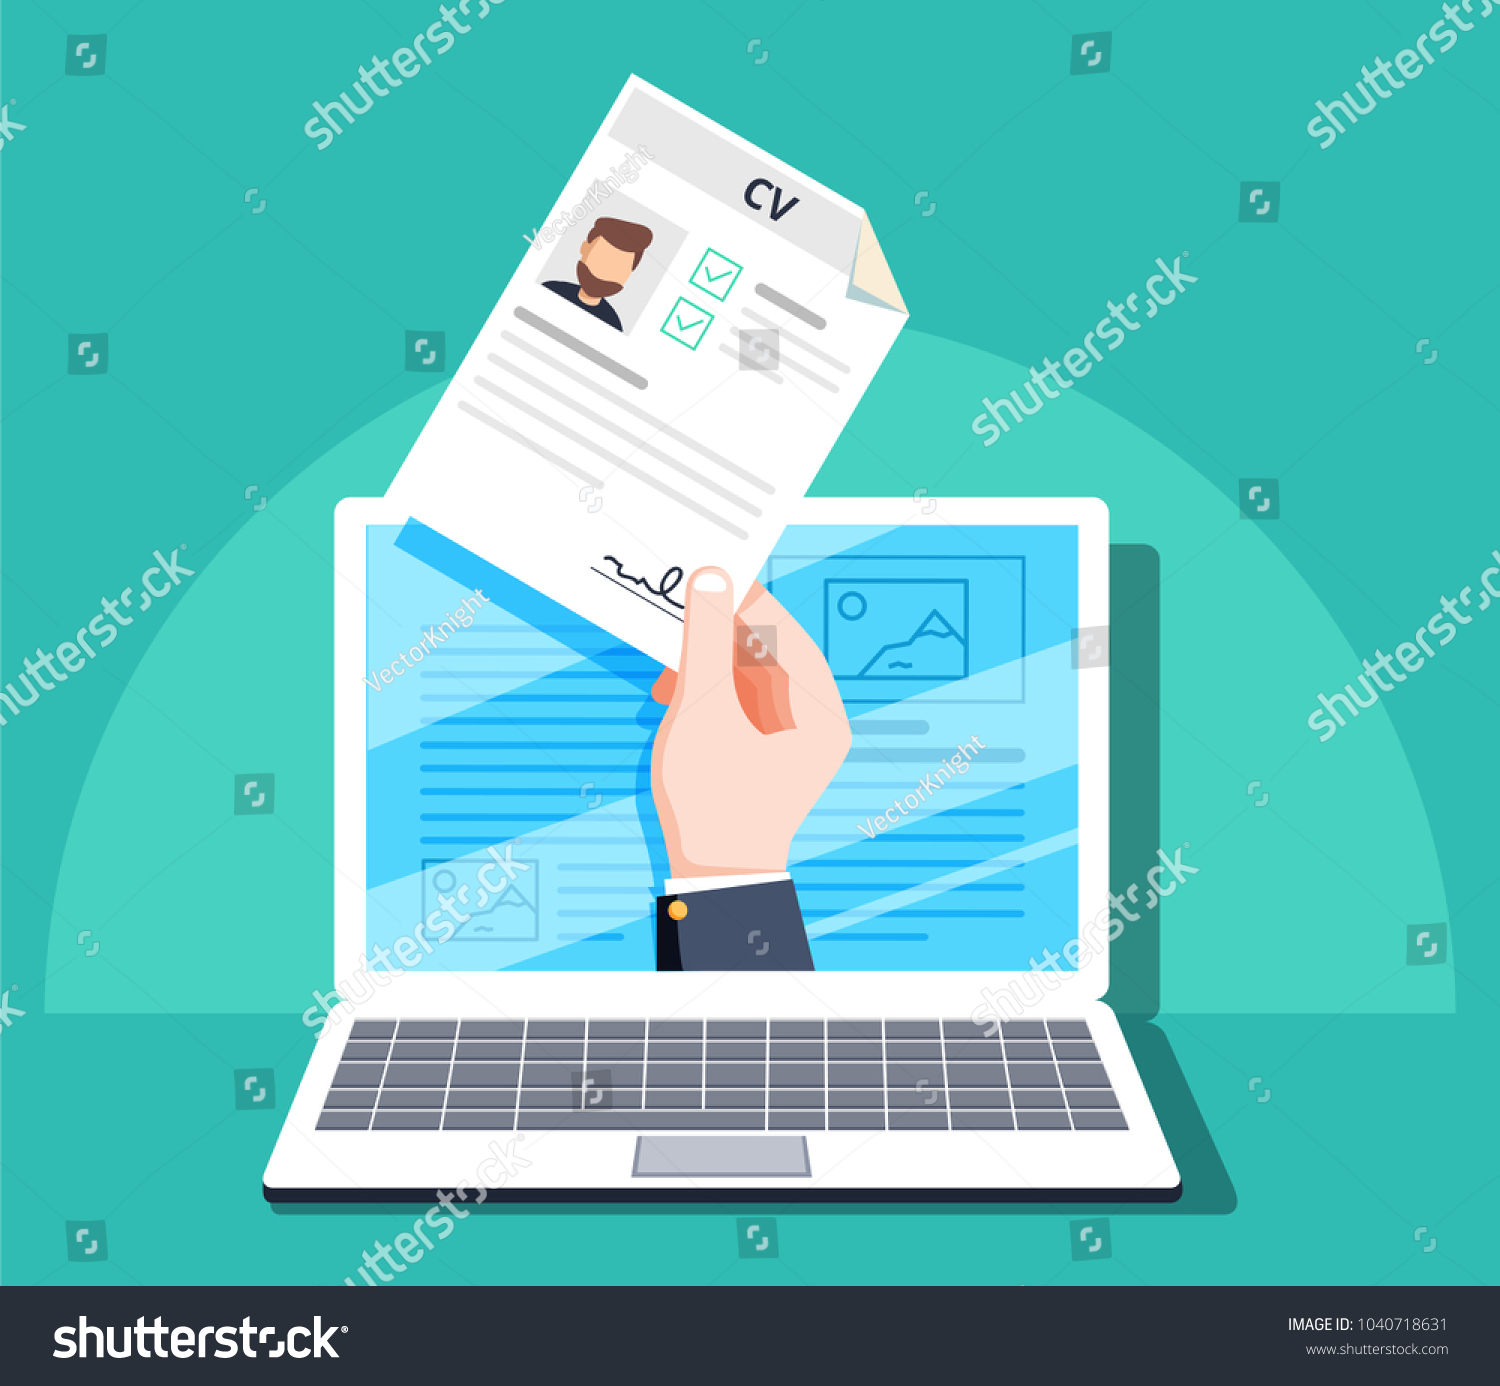 shutterstock image reviewer salary Human Resources Online Job Application Job Stock Vector (Royalty ...